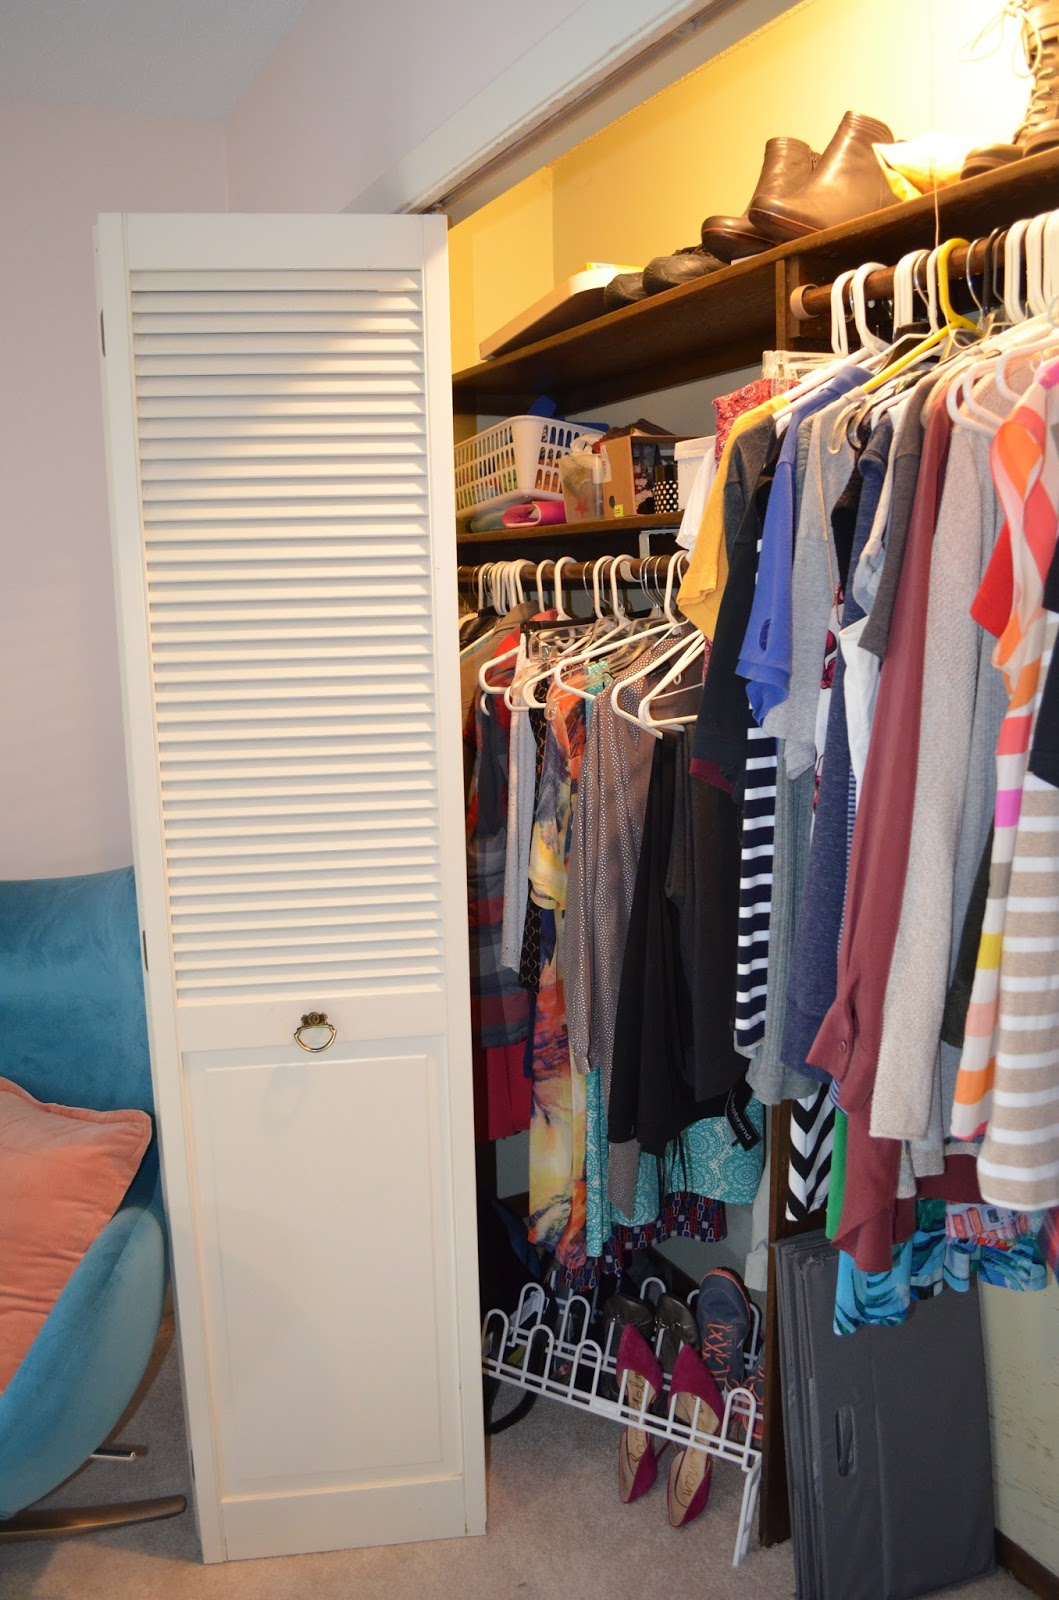 The End Result Is That I Only Use About 4 Ft Of My Closet. You Can See The  Mess In The Area I Canu0027t Reach. Thatu0027s Where Clothes, Etc Go To Die.